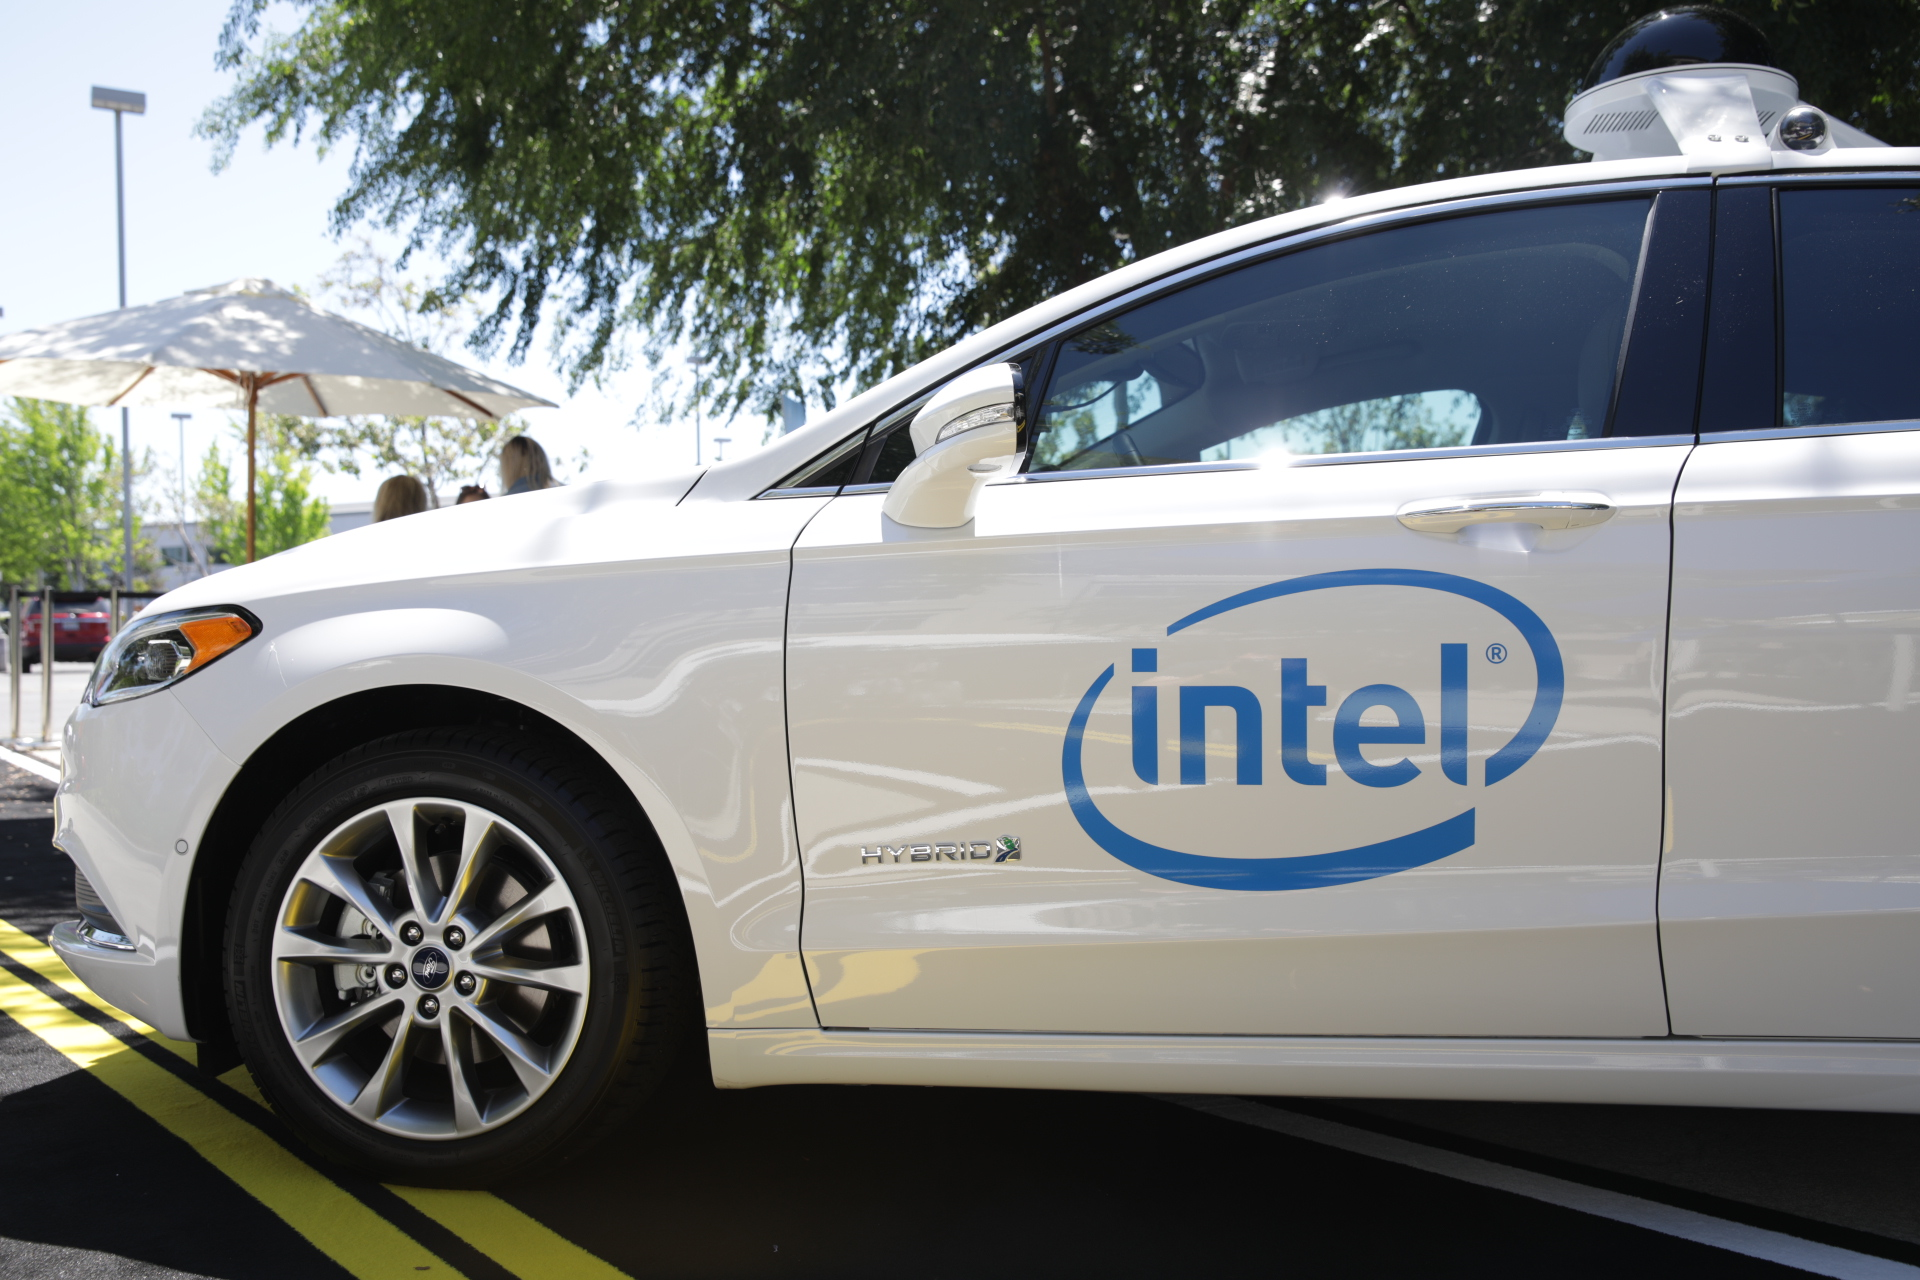 Intel to Launch its Own Autonomous Cars